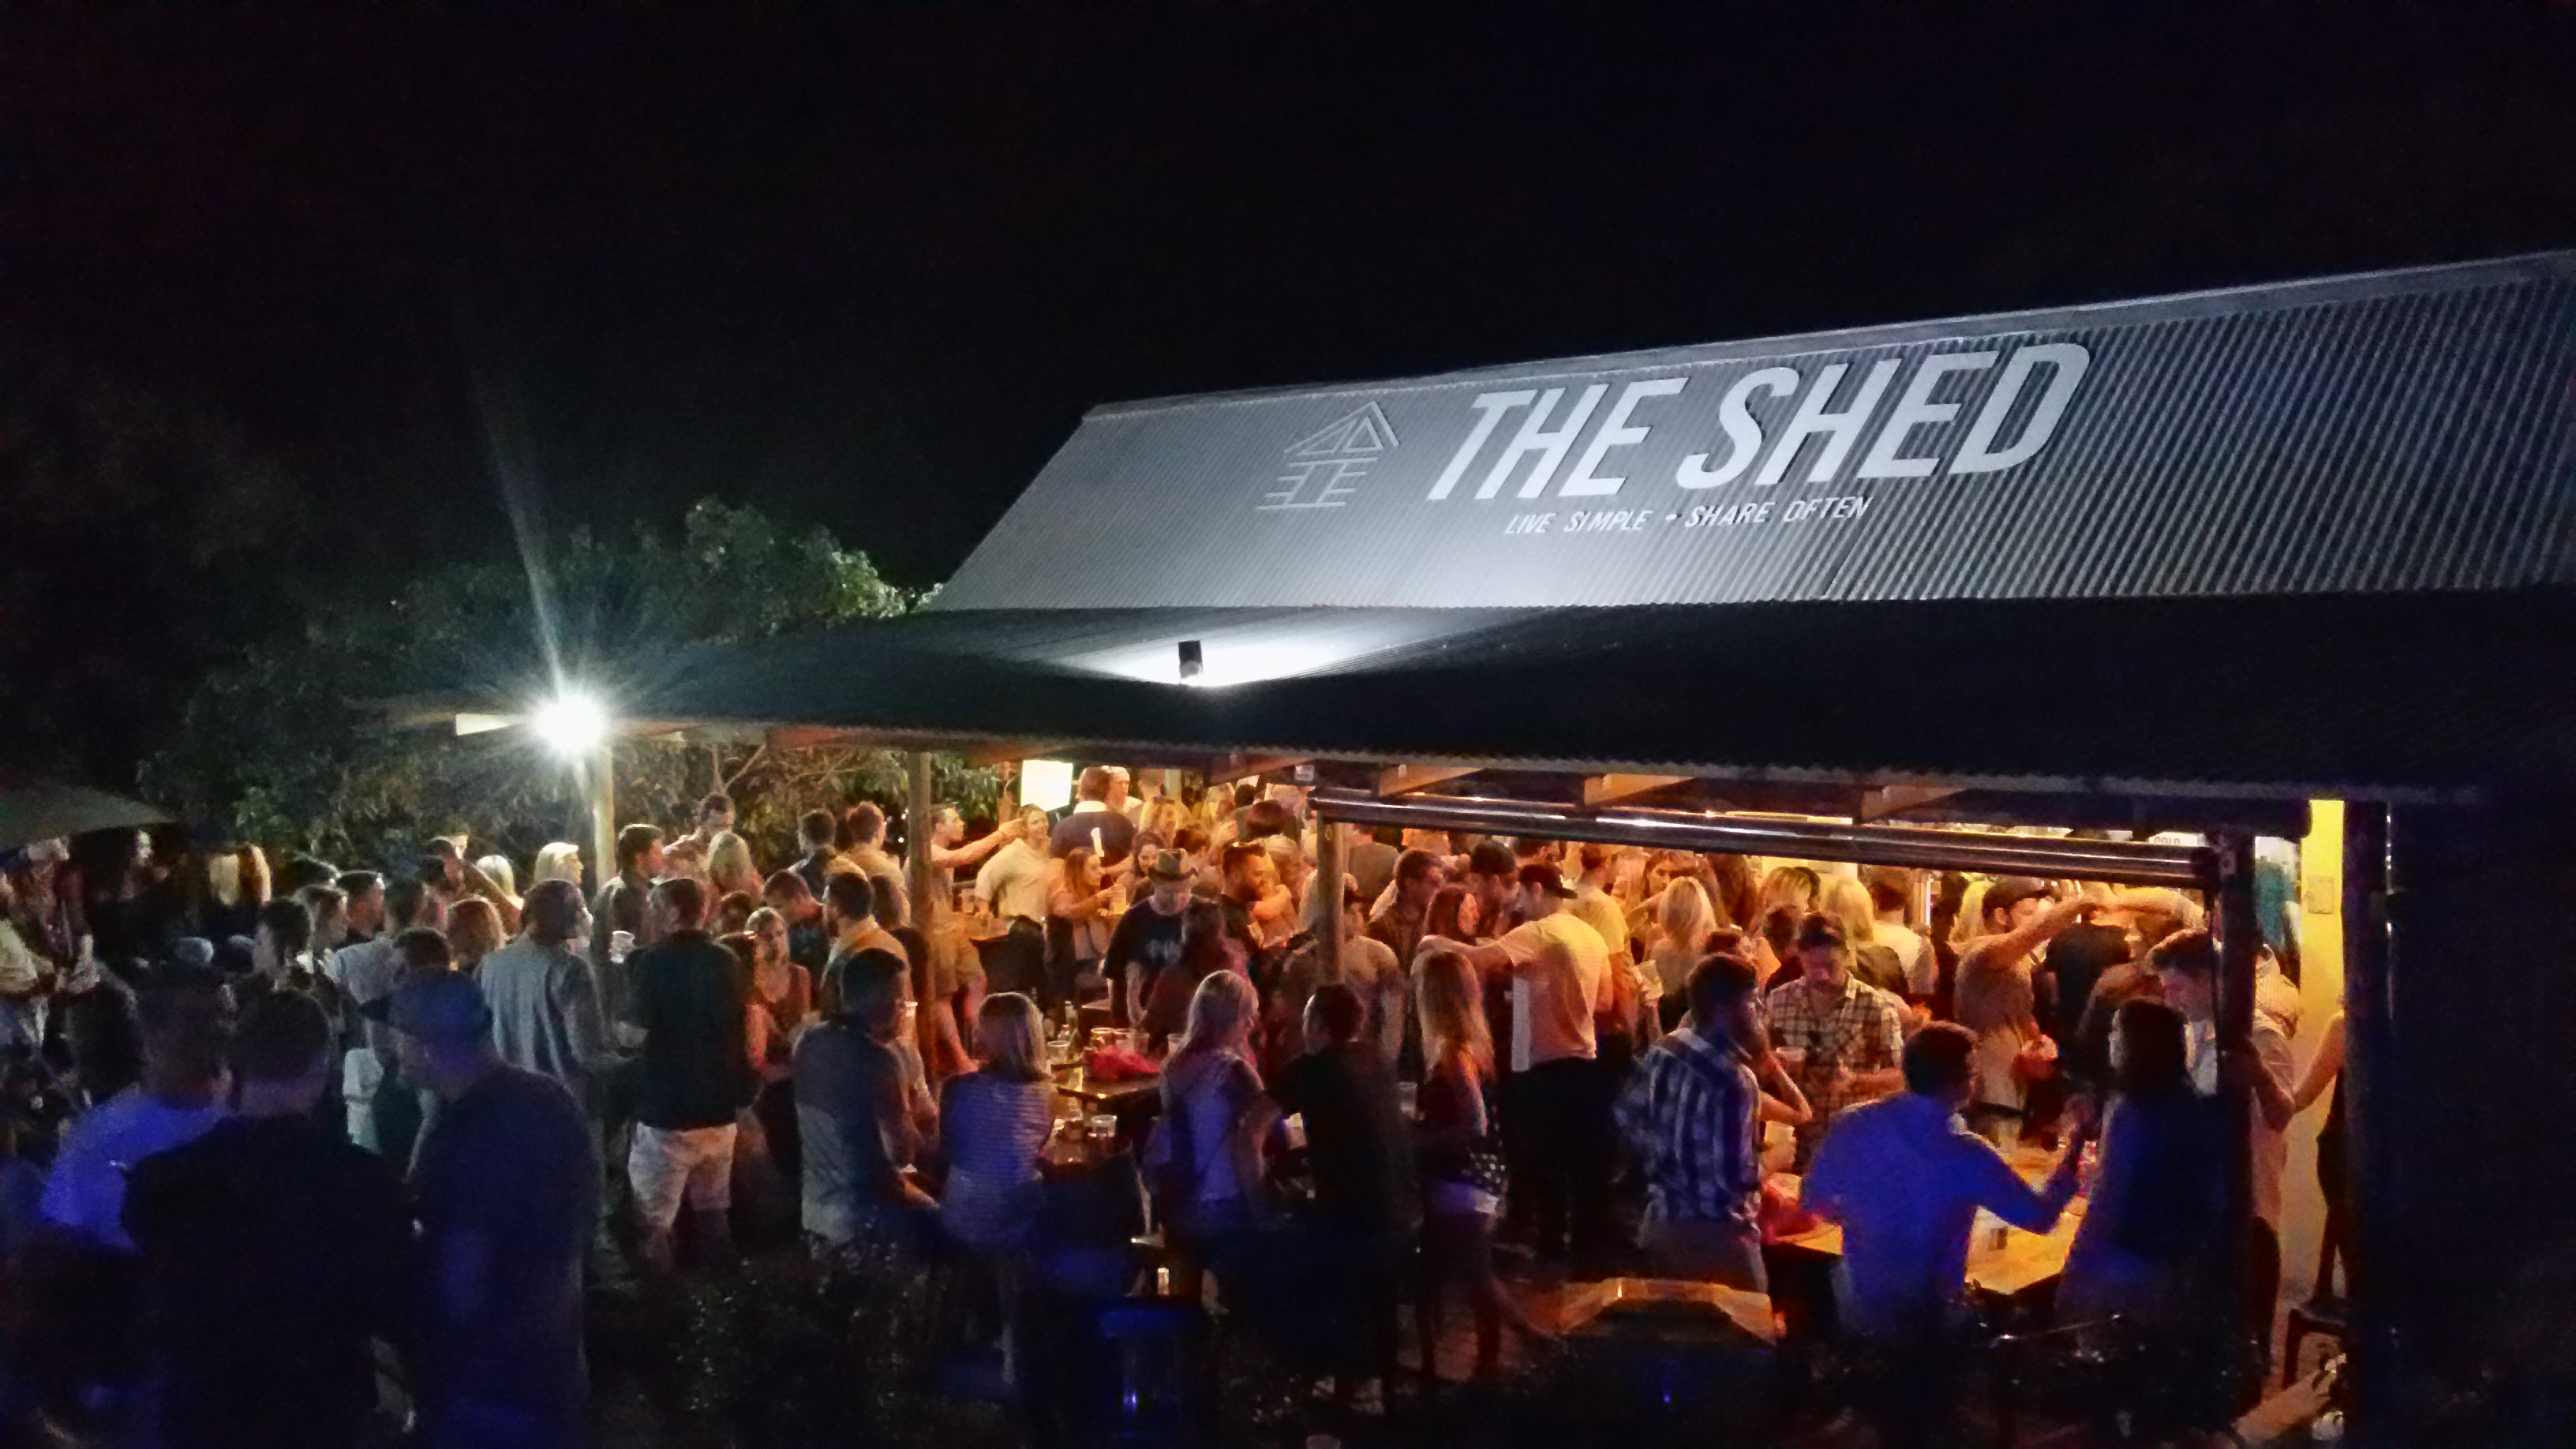 Night at The Shed